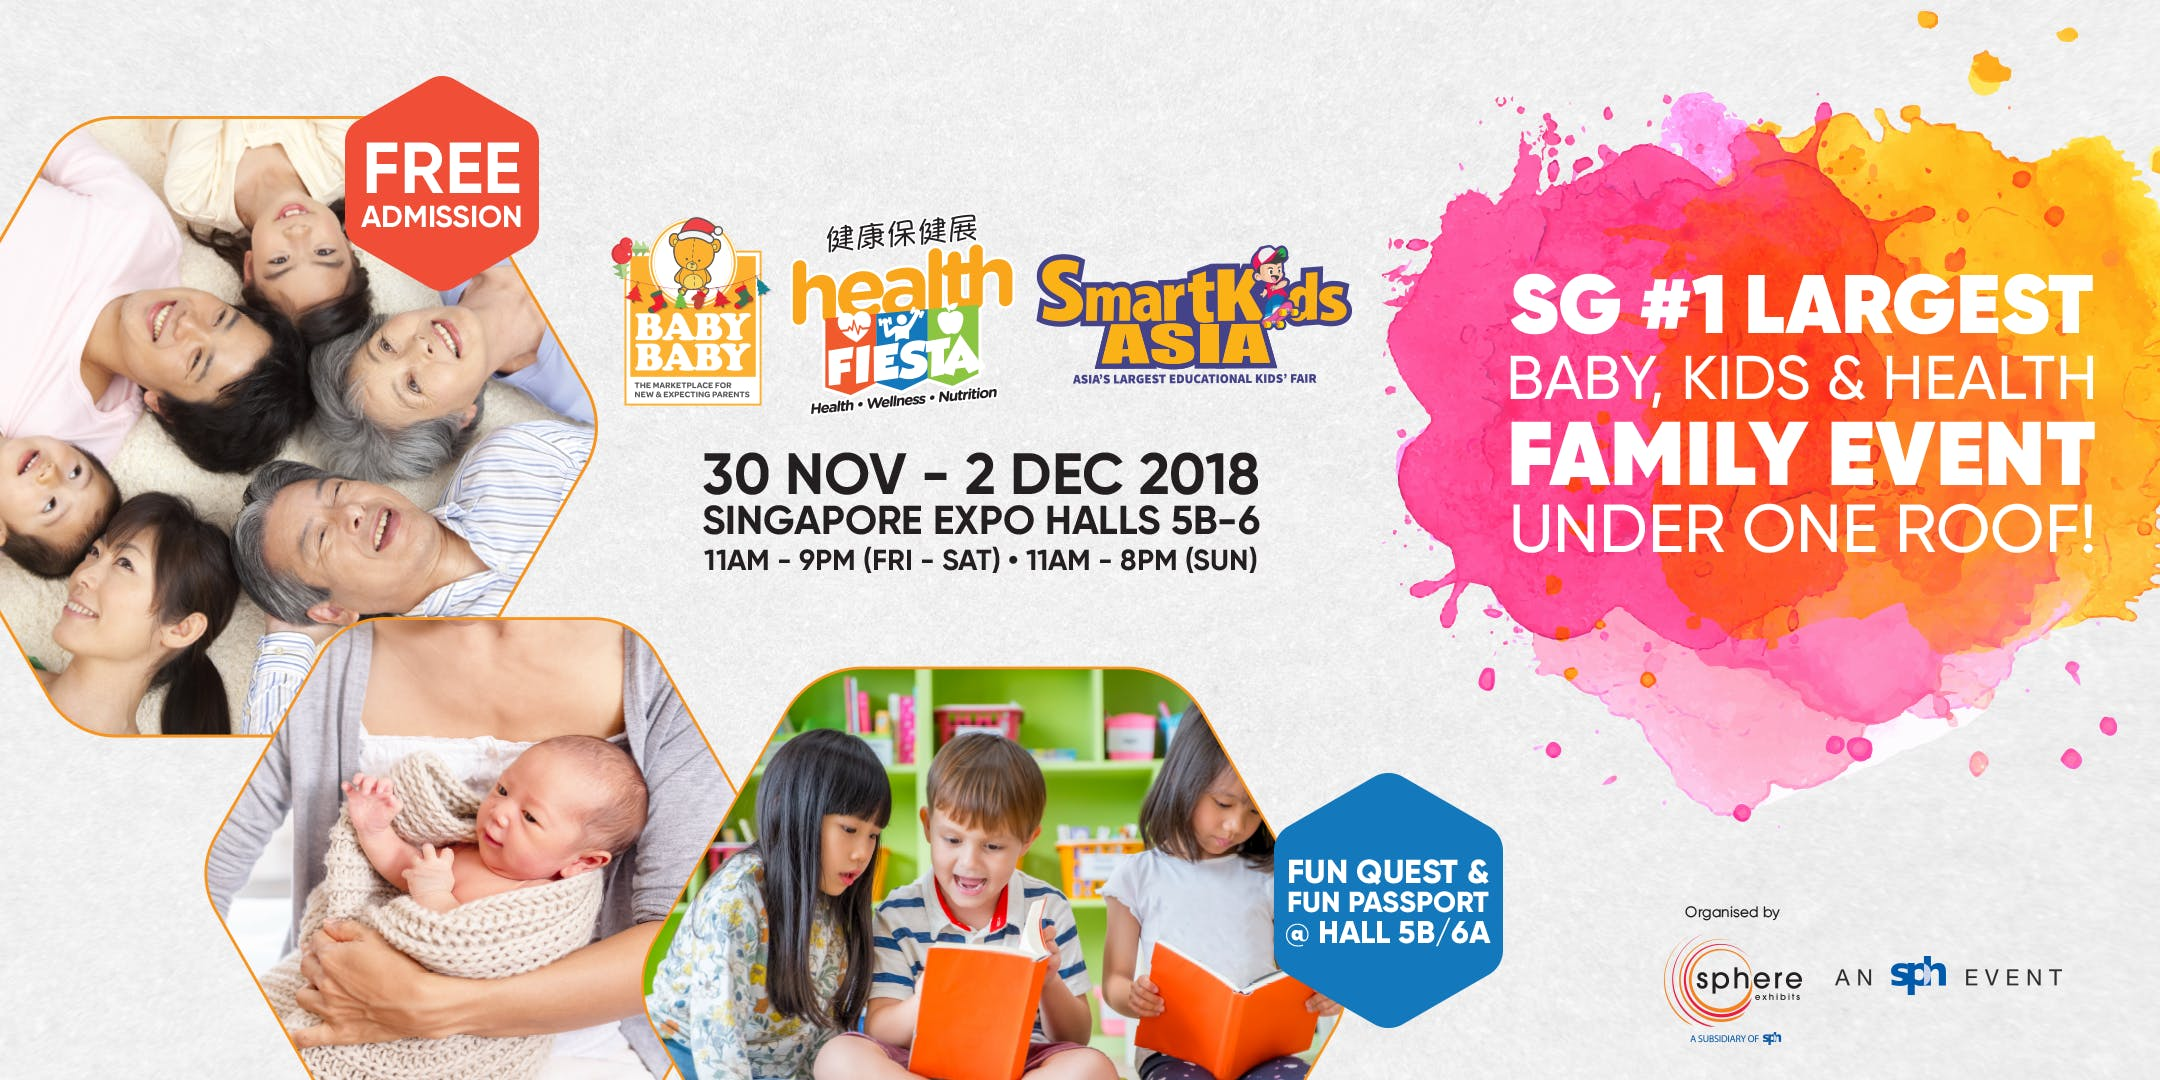 3 in 1 sg 1 largest baby kids health family event under one roof